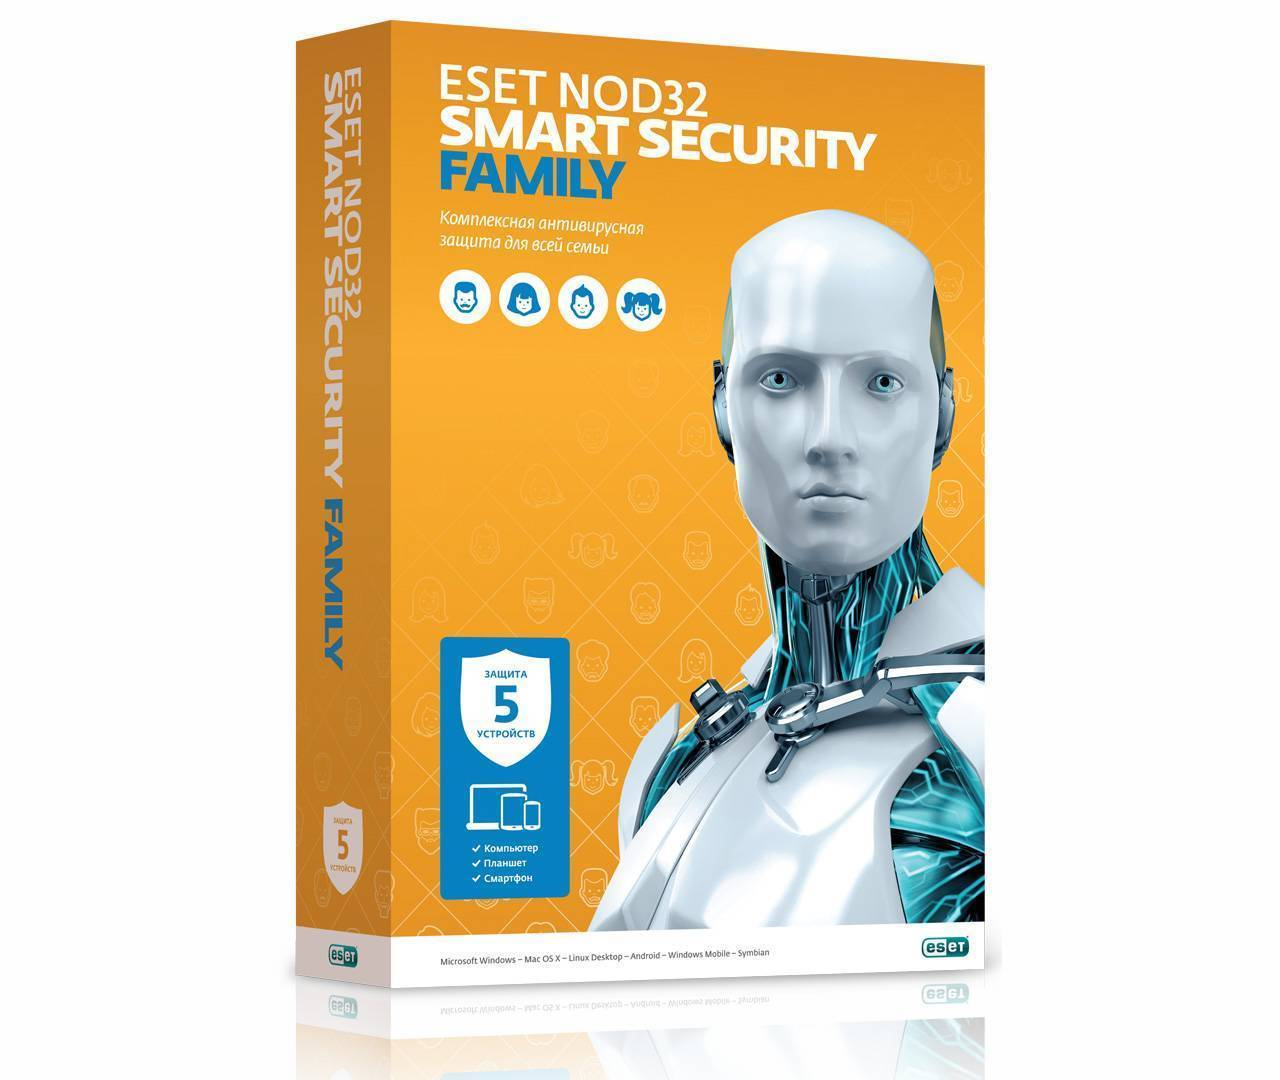 Eset Smart Security 5 cheap license